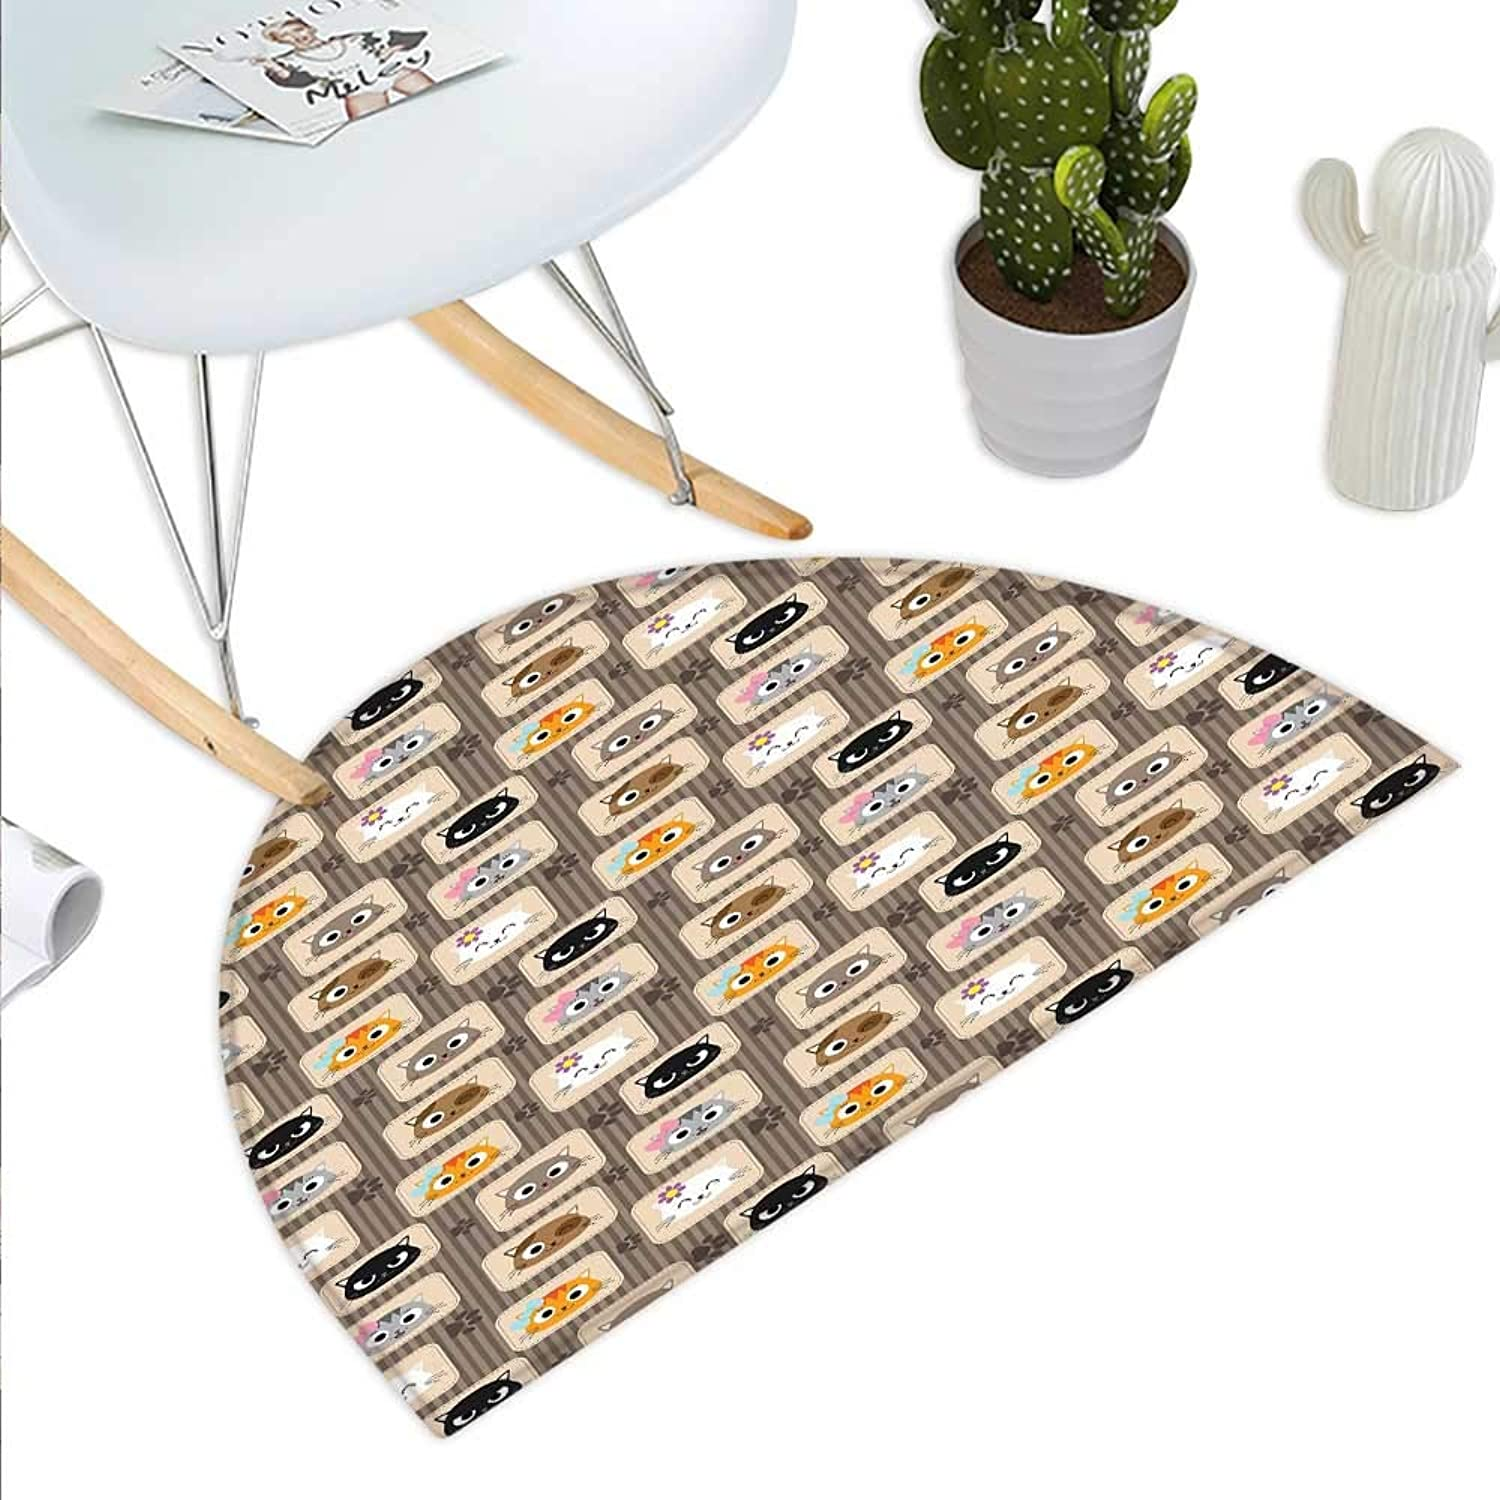 Cat Semicircle Doormat Patchwork Inspired Pattern Adorable Kitty Faces Silly Expressions Footprints Stripes Halfmoon doormats H 35.4  xD 53.1  Multicolor